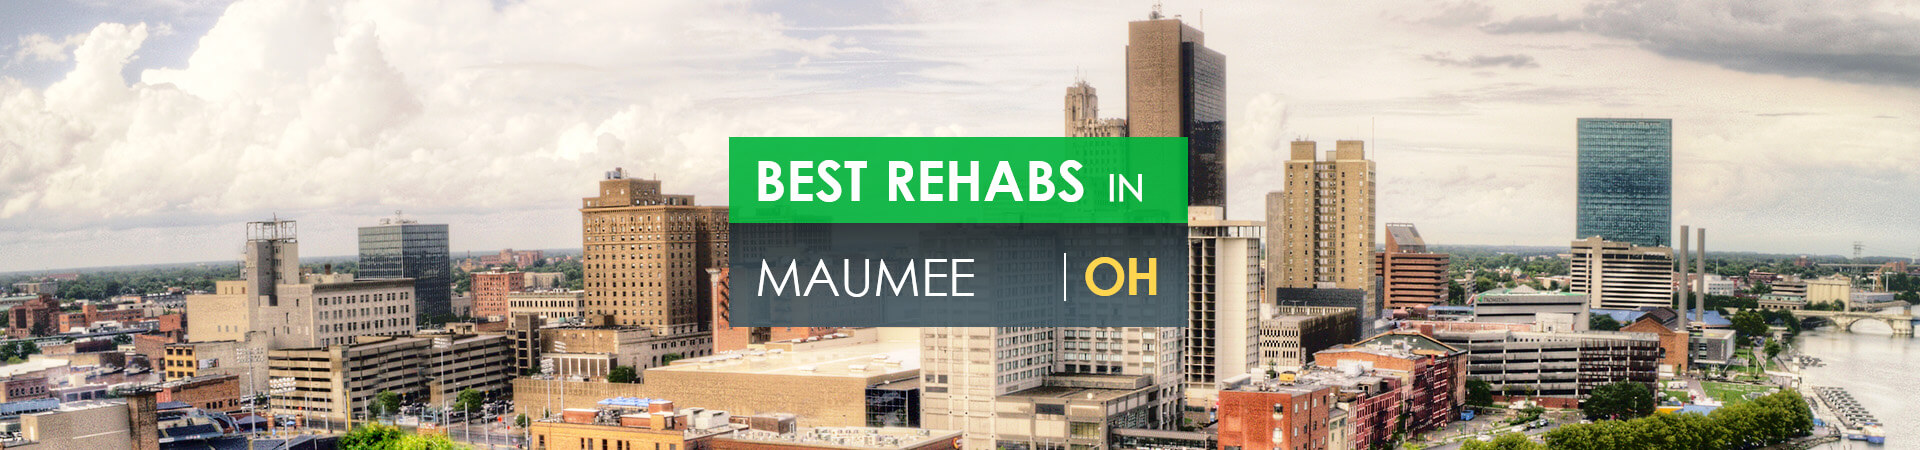 Best rehabs in Maumee, OH